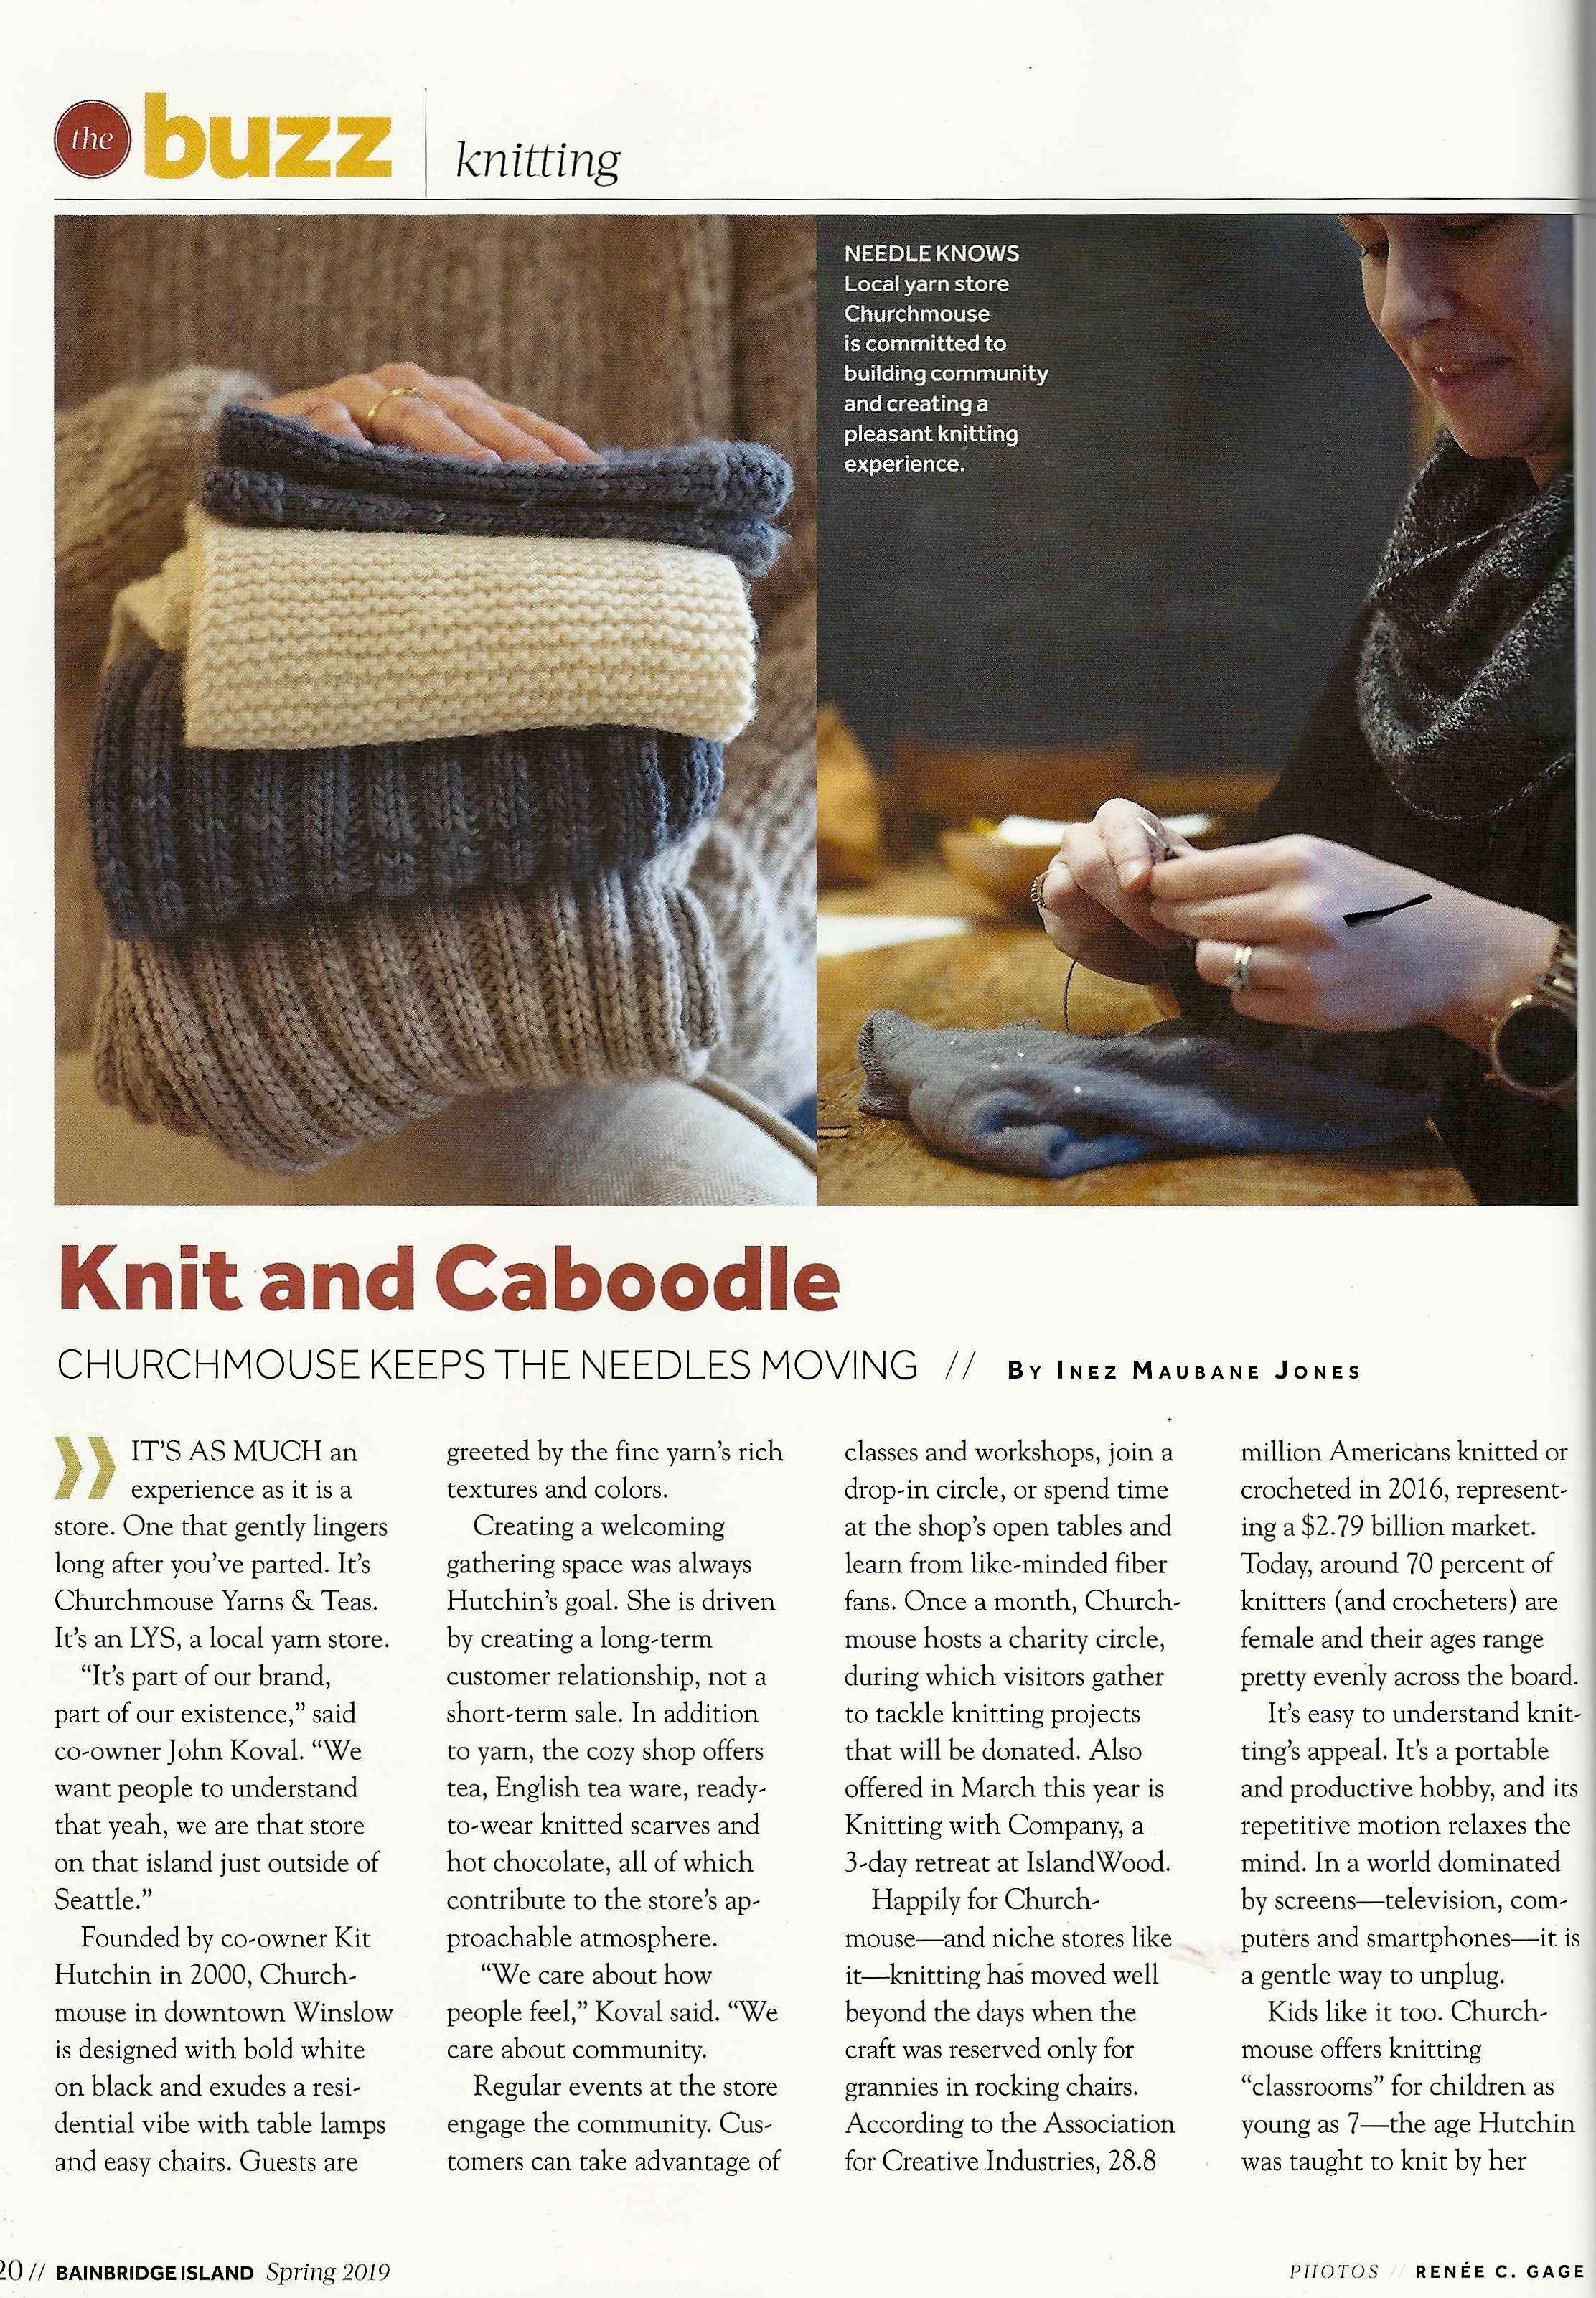 knitting1.jpeg